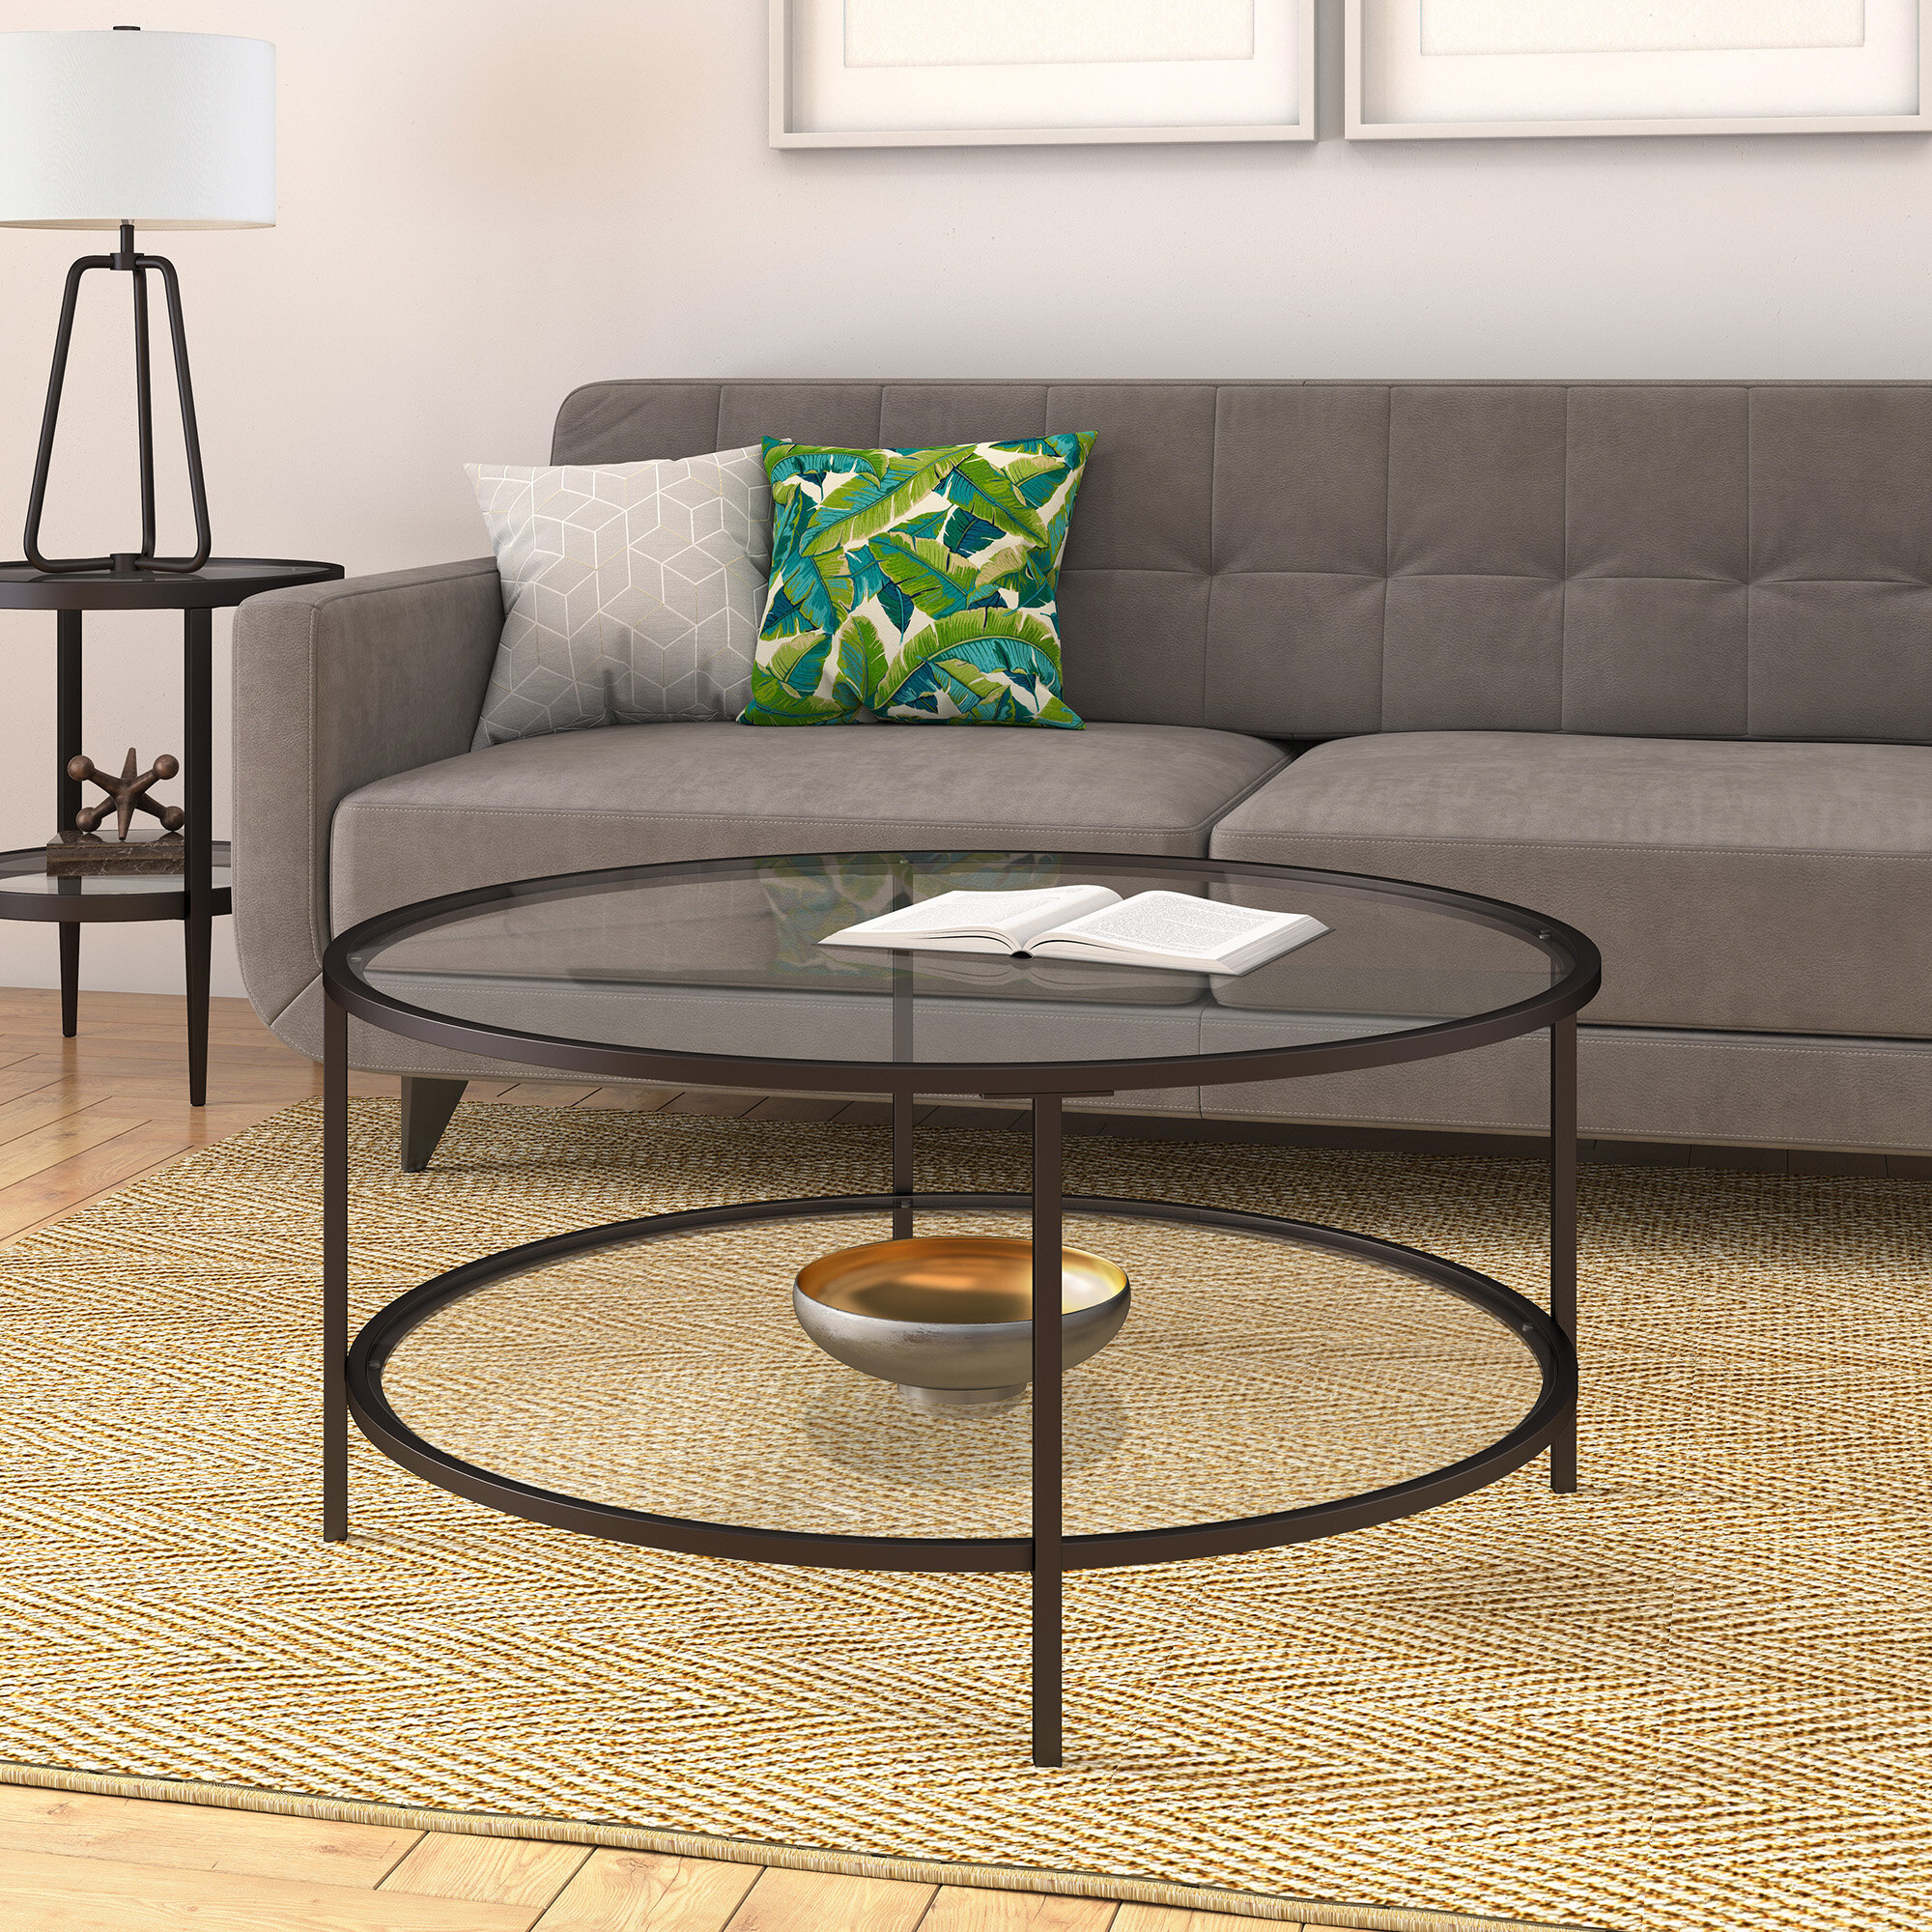 Bronze Glass Coffee Tables You Ll Love In 2021 Wayfair